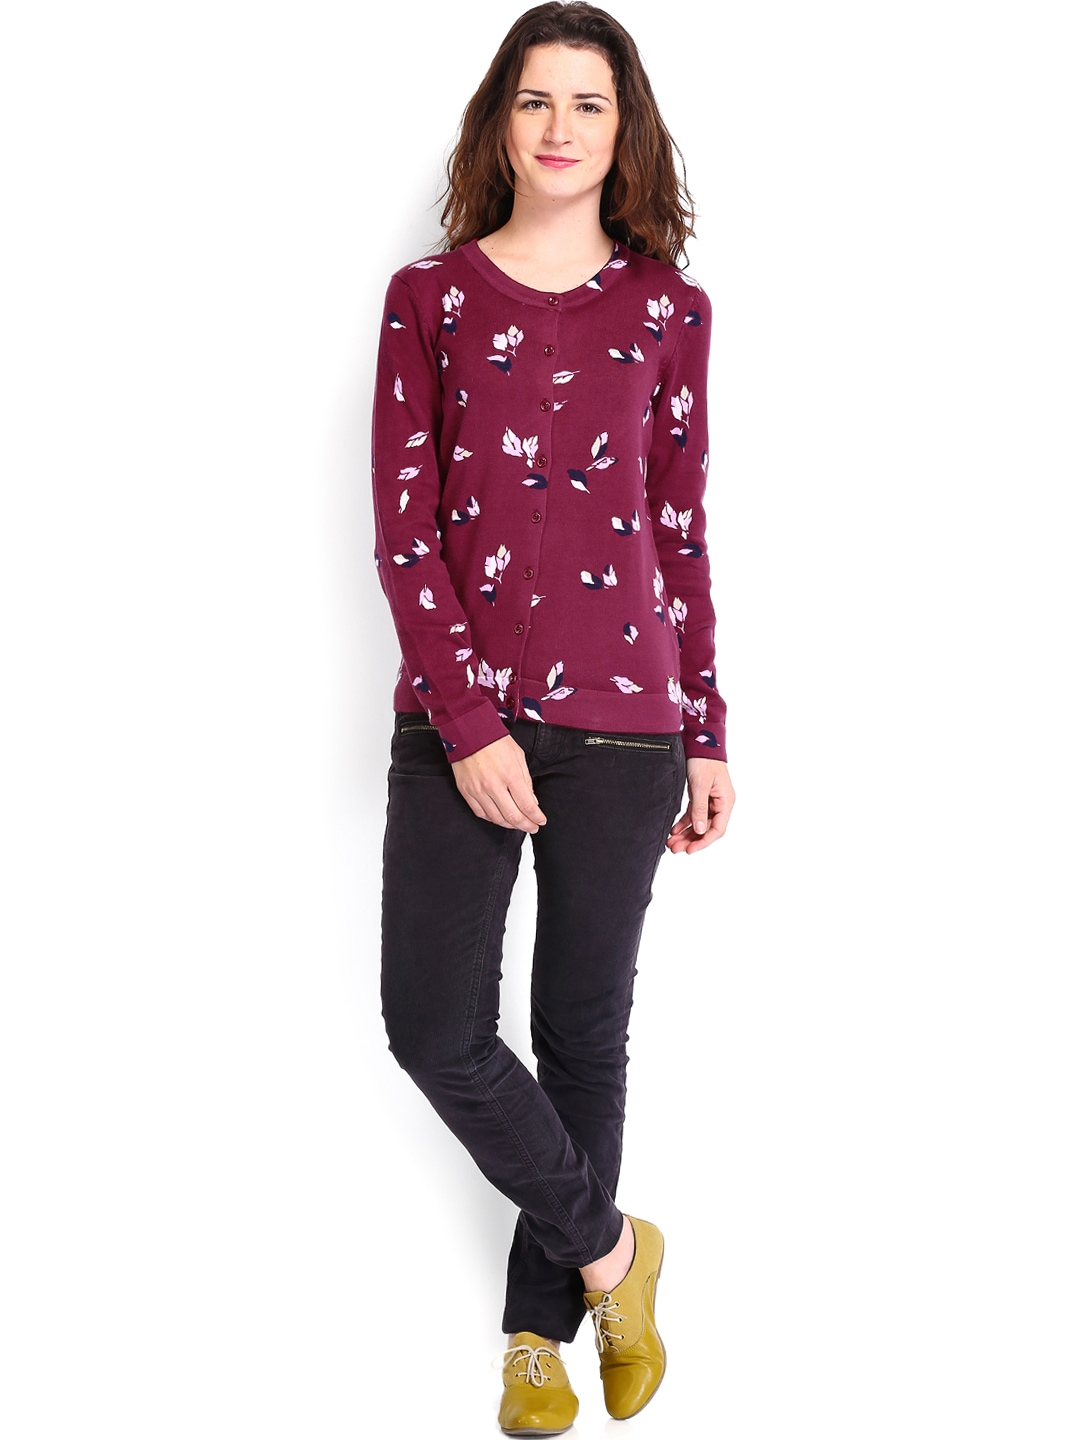 Cardigan Sweaters. FEATURES Let's Work Together Must Have Looks Autumn Rose Menswear Inspired Modern Match Best Sellers Online Exclusives Clothing New Arrivals. Tops and Blouses Long Sleeve Tops Short Sleeve Tops Sleeveless Tops Tee Shop .